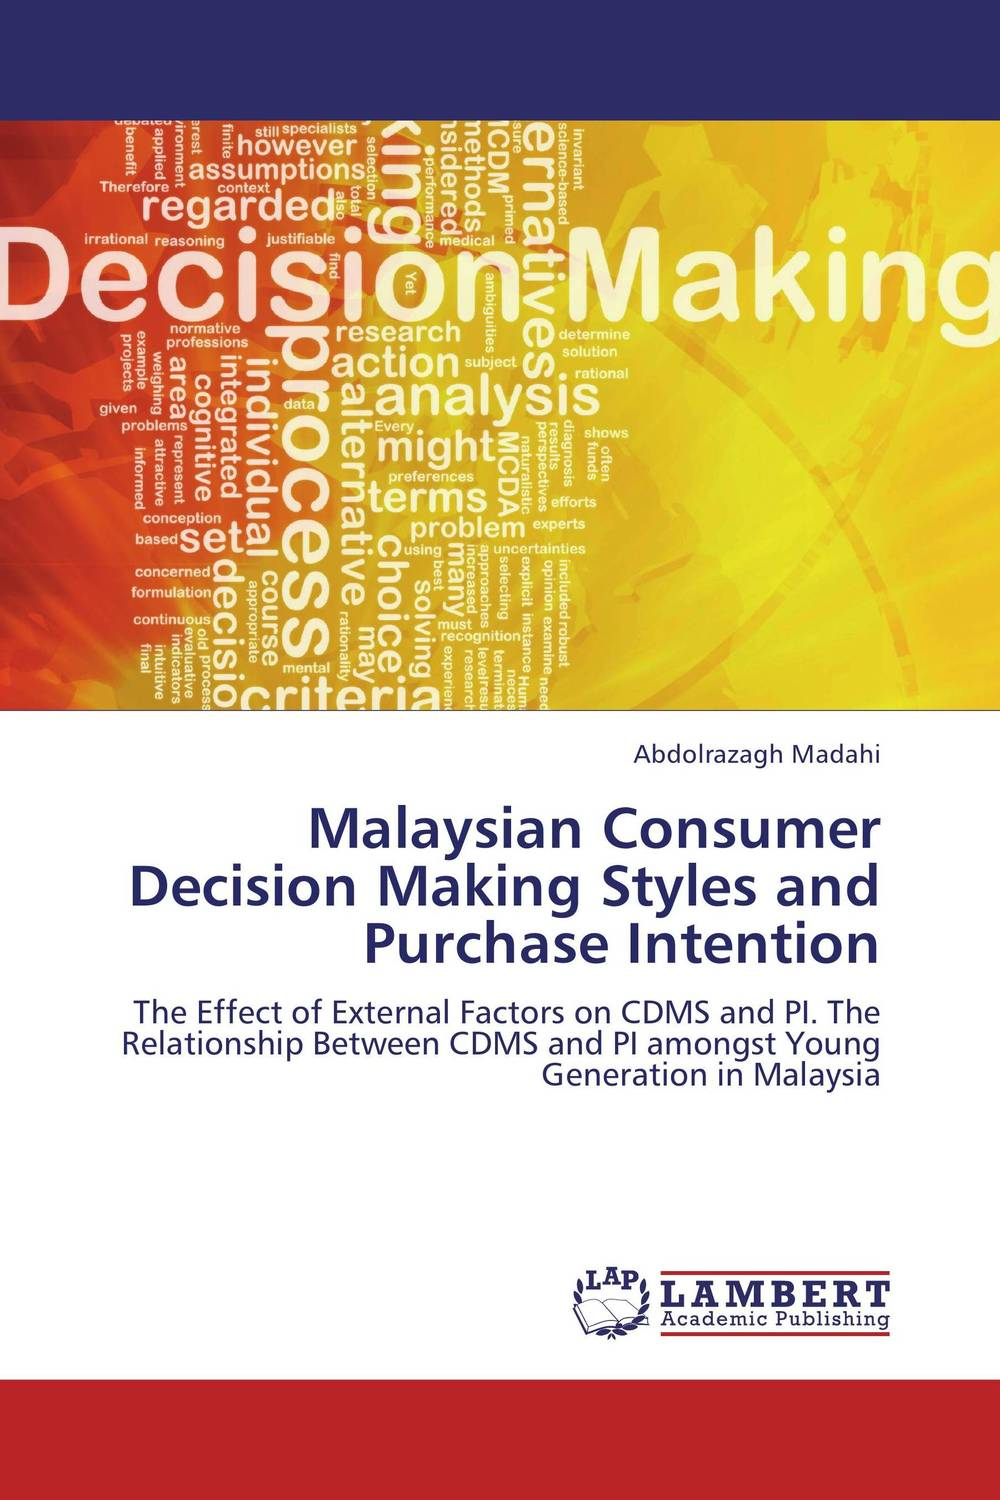 Malaysian Consumer Decision Making Styles and Purchase Intention eric holtzclaw v laddering unlocking the potential of consumer behavior